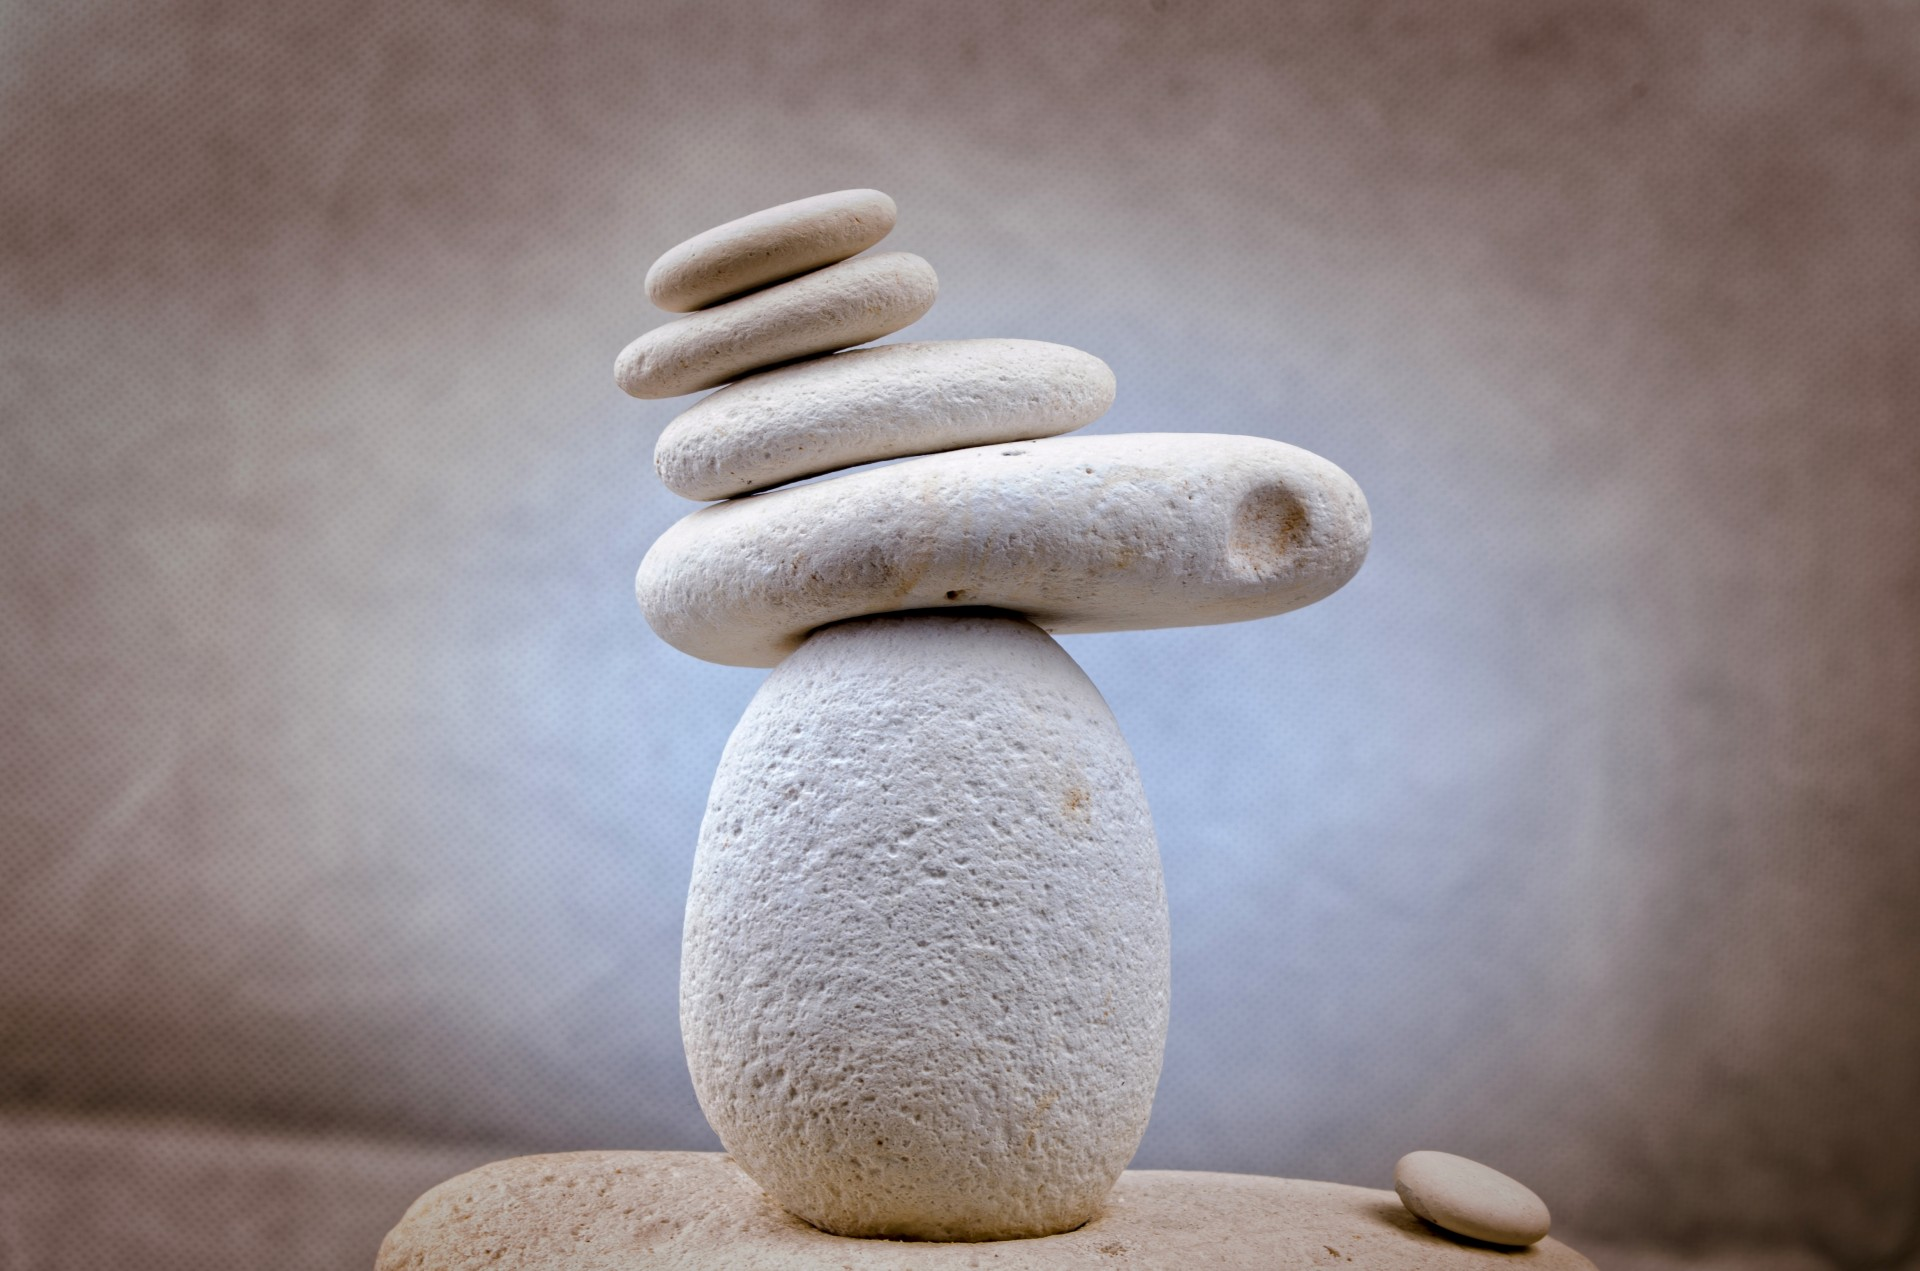 A large stone balancing different sizes of stones